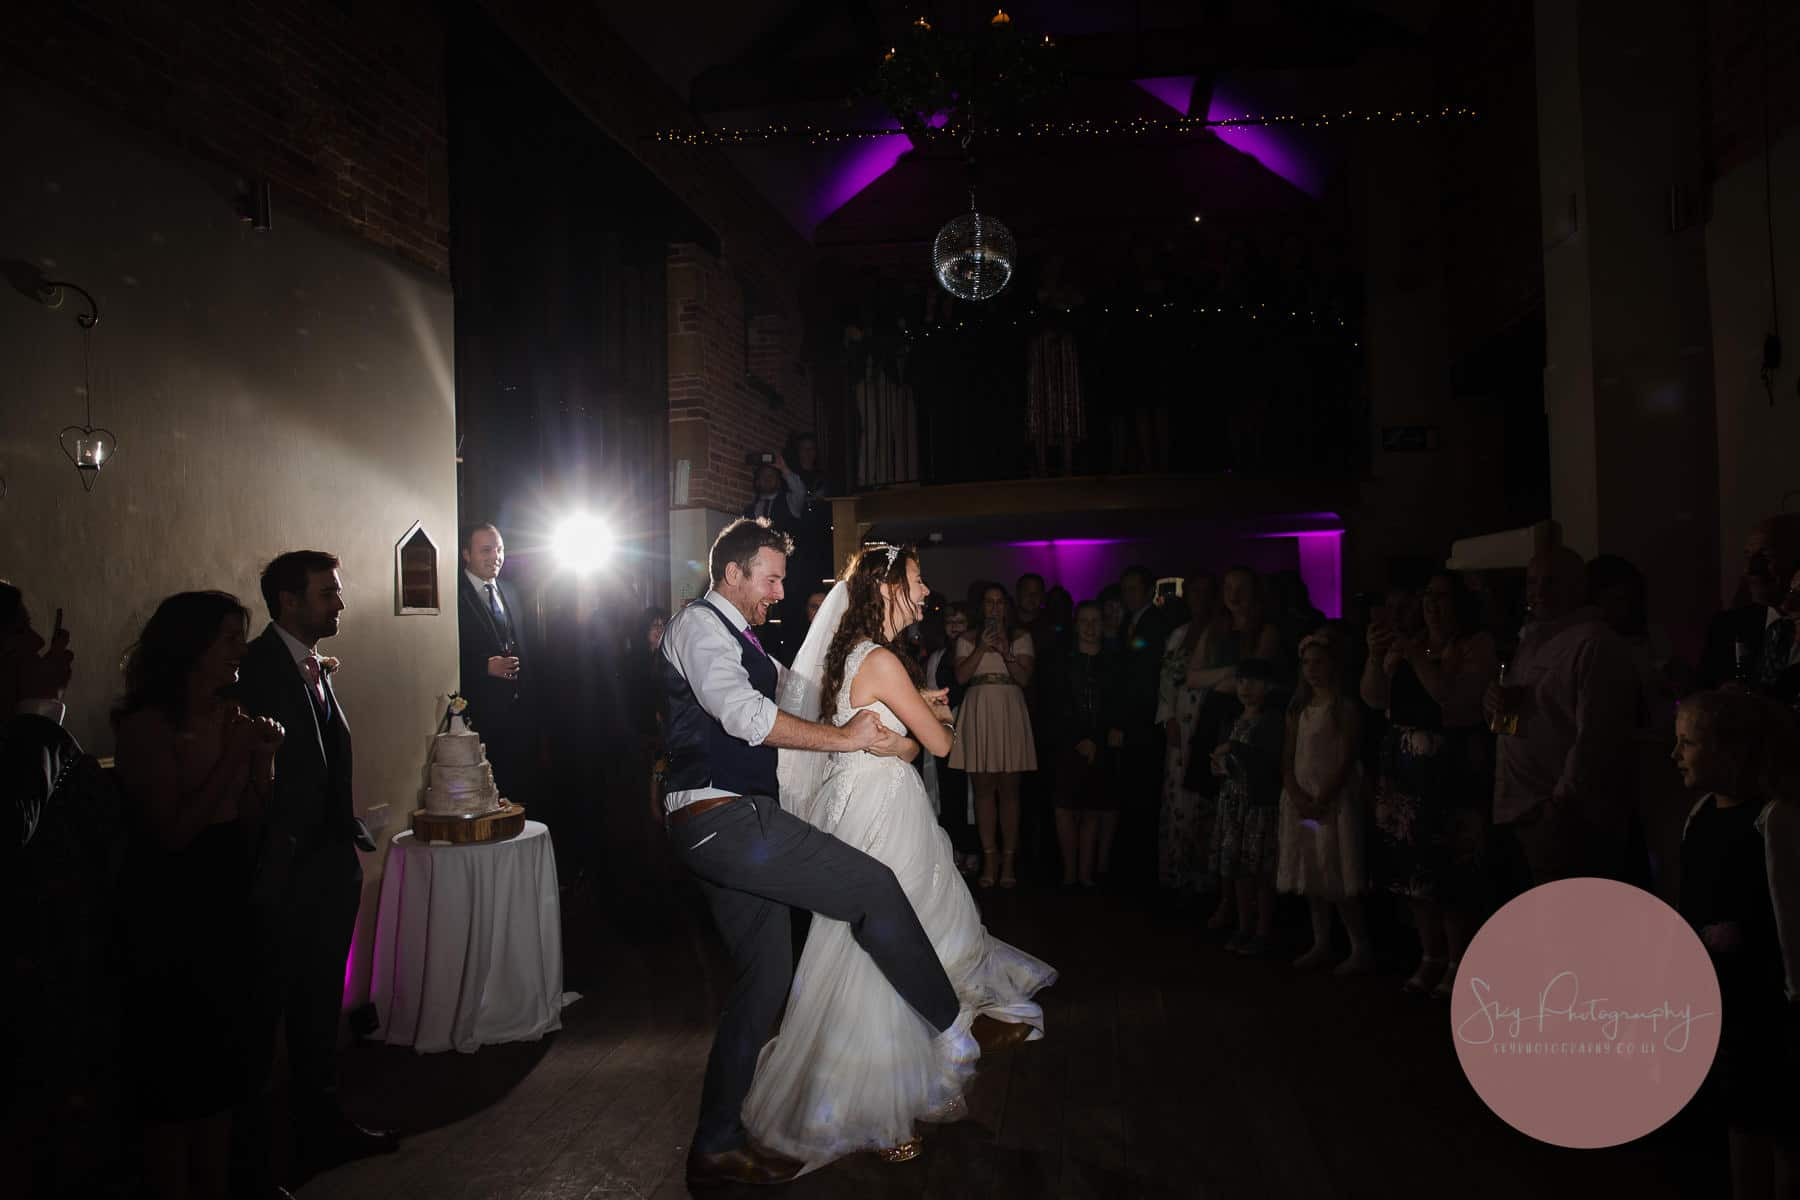 groom getting his foot stuck whilst performing first dance routine, funny moment